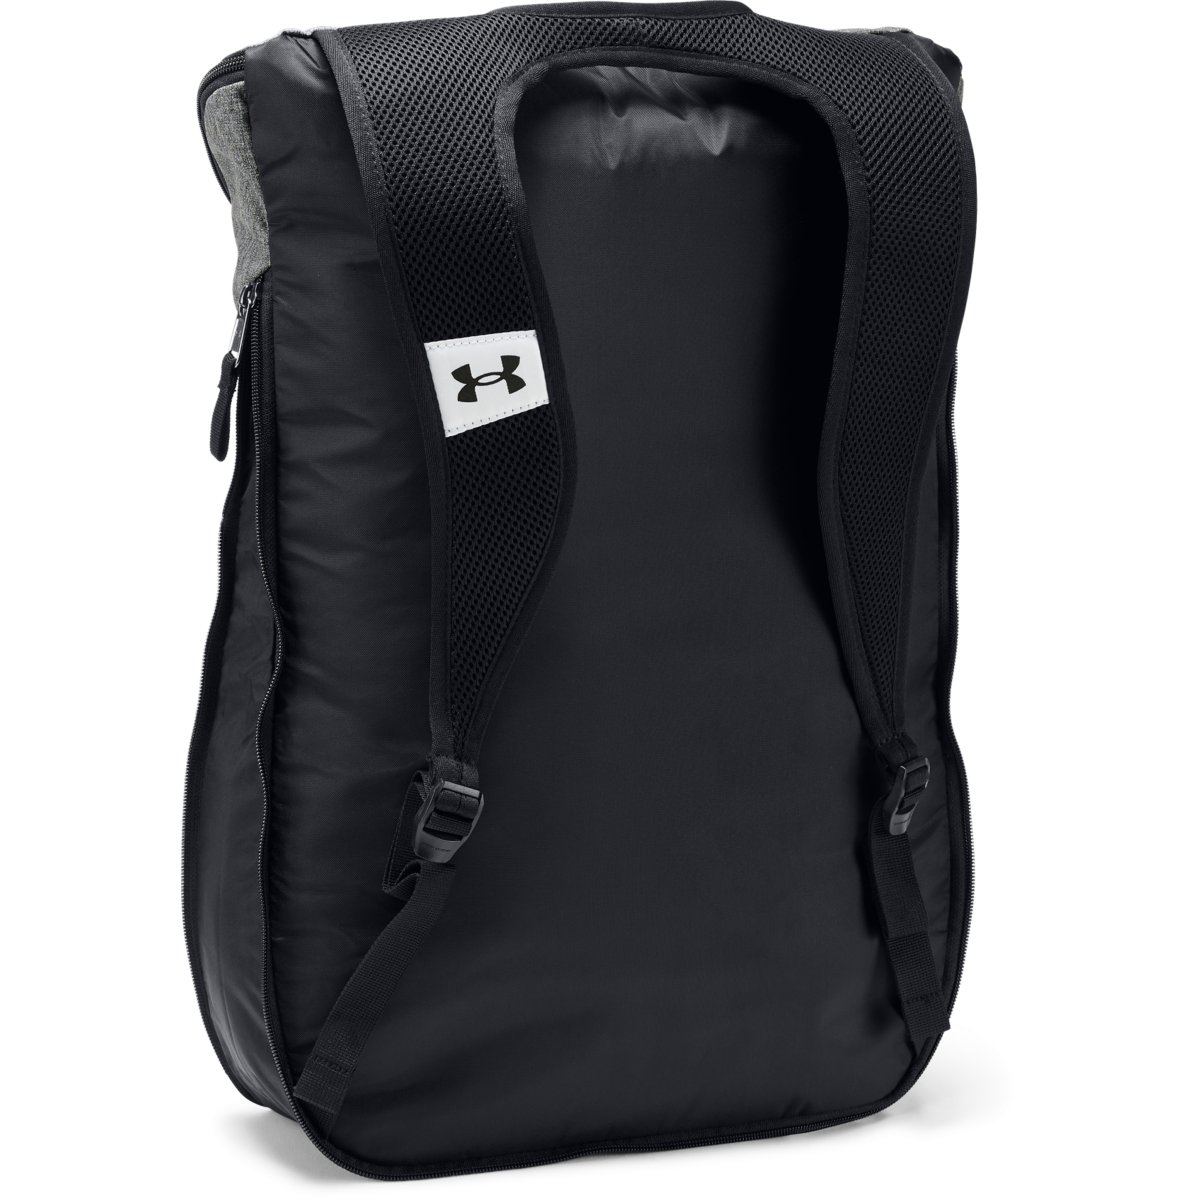 Under Armour rucsac mare gri Expandable Sackpack